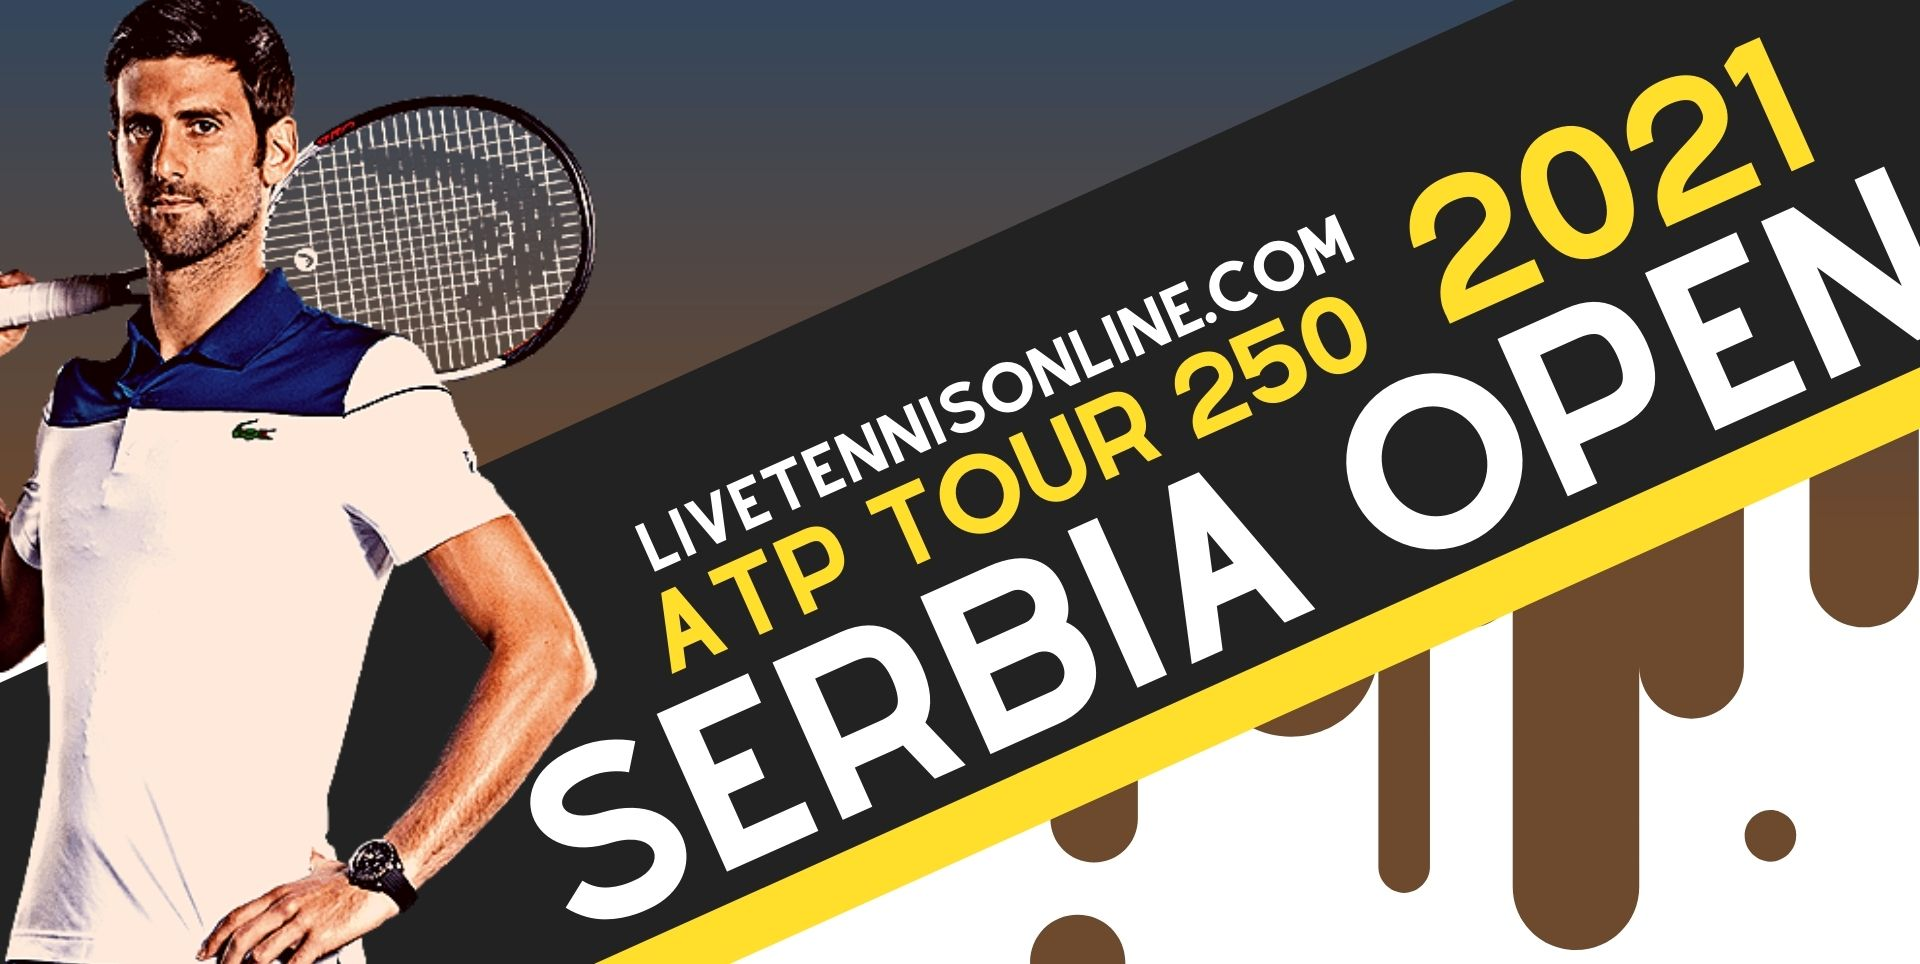 Serbia Open Live Streaming